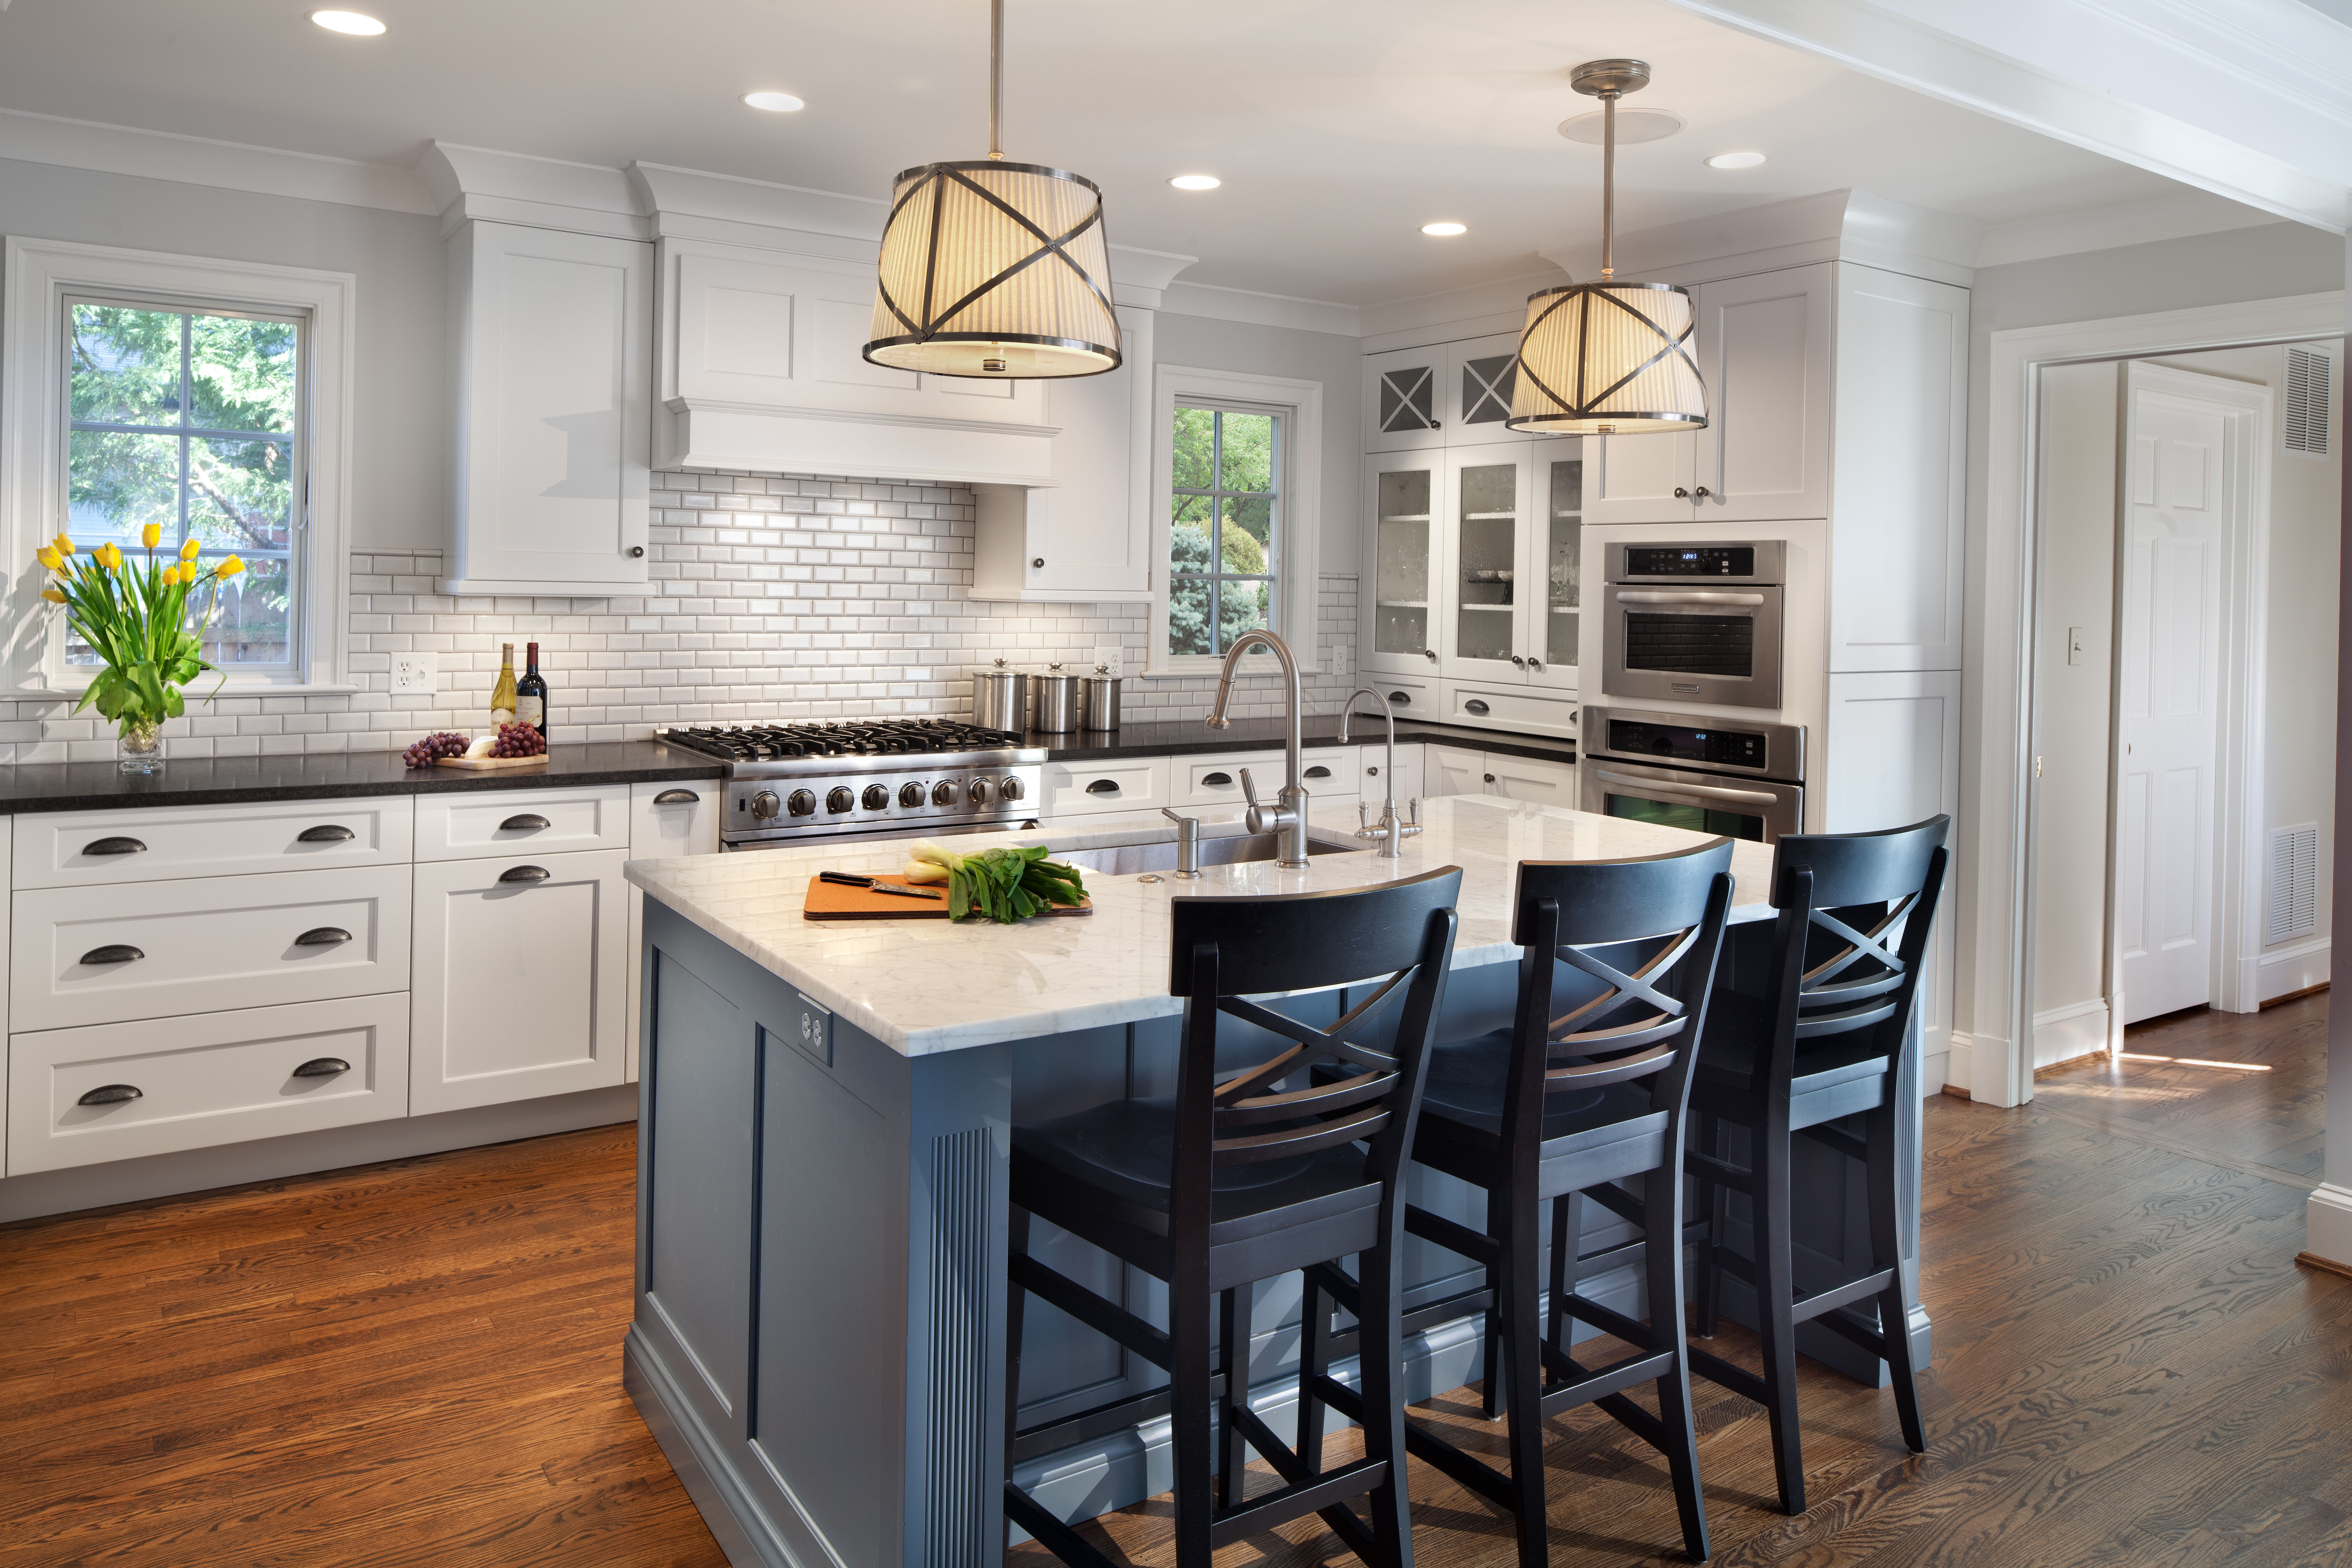 renovation cures kitchen layout problems